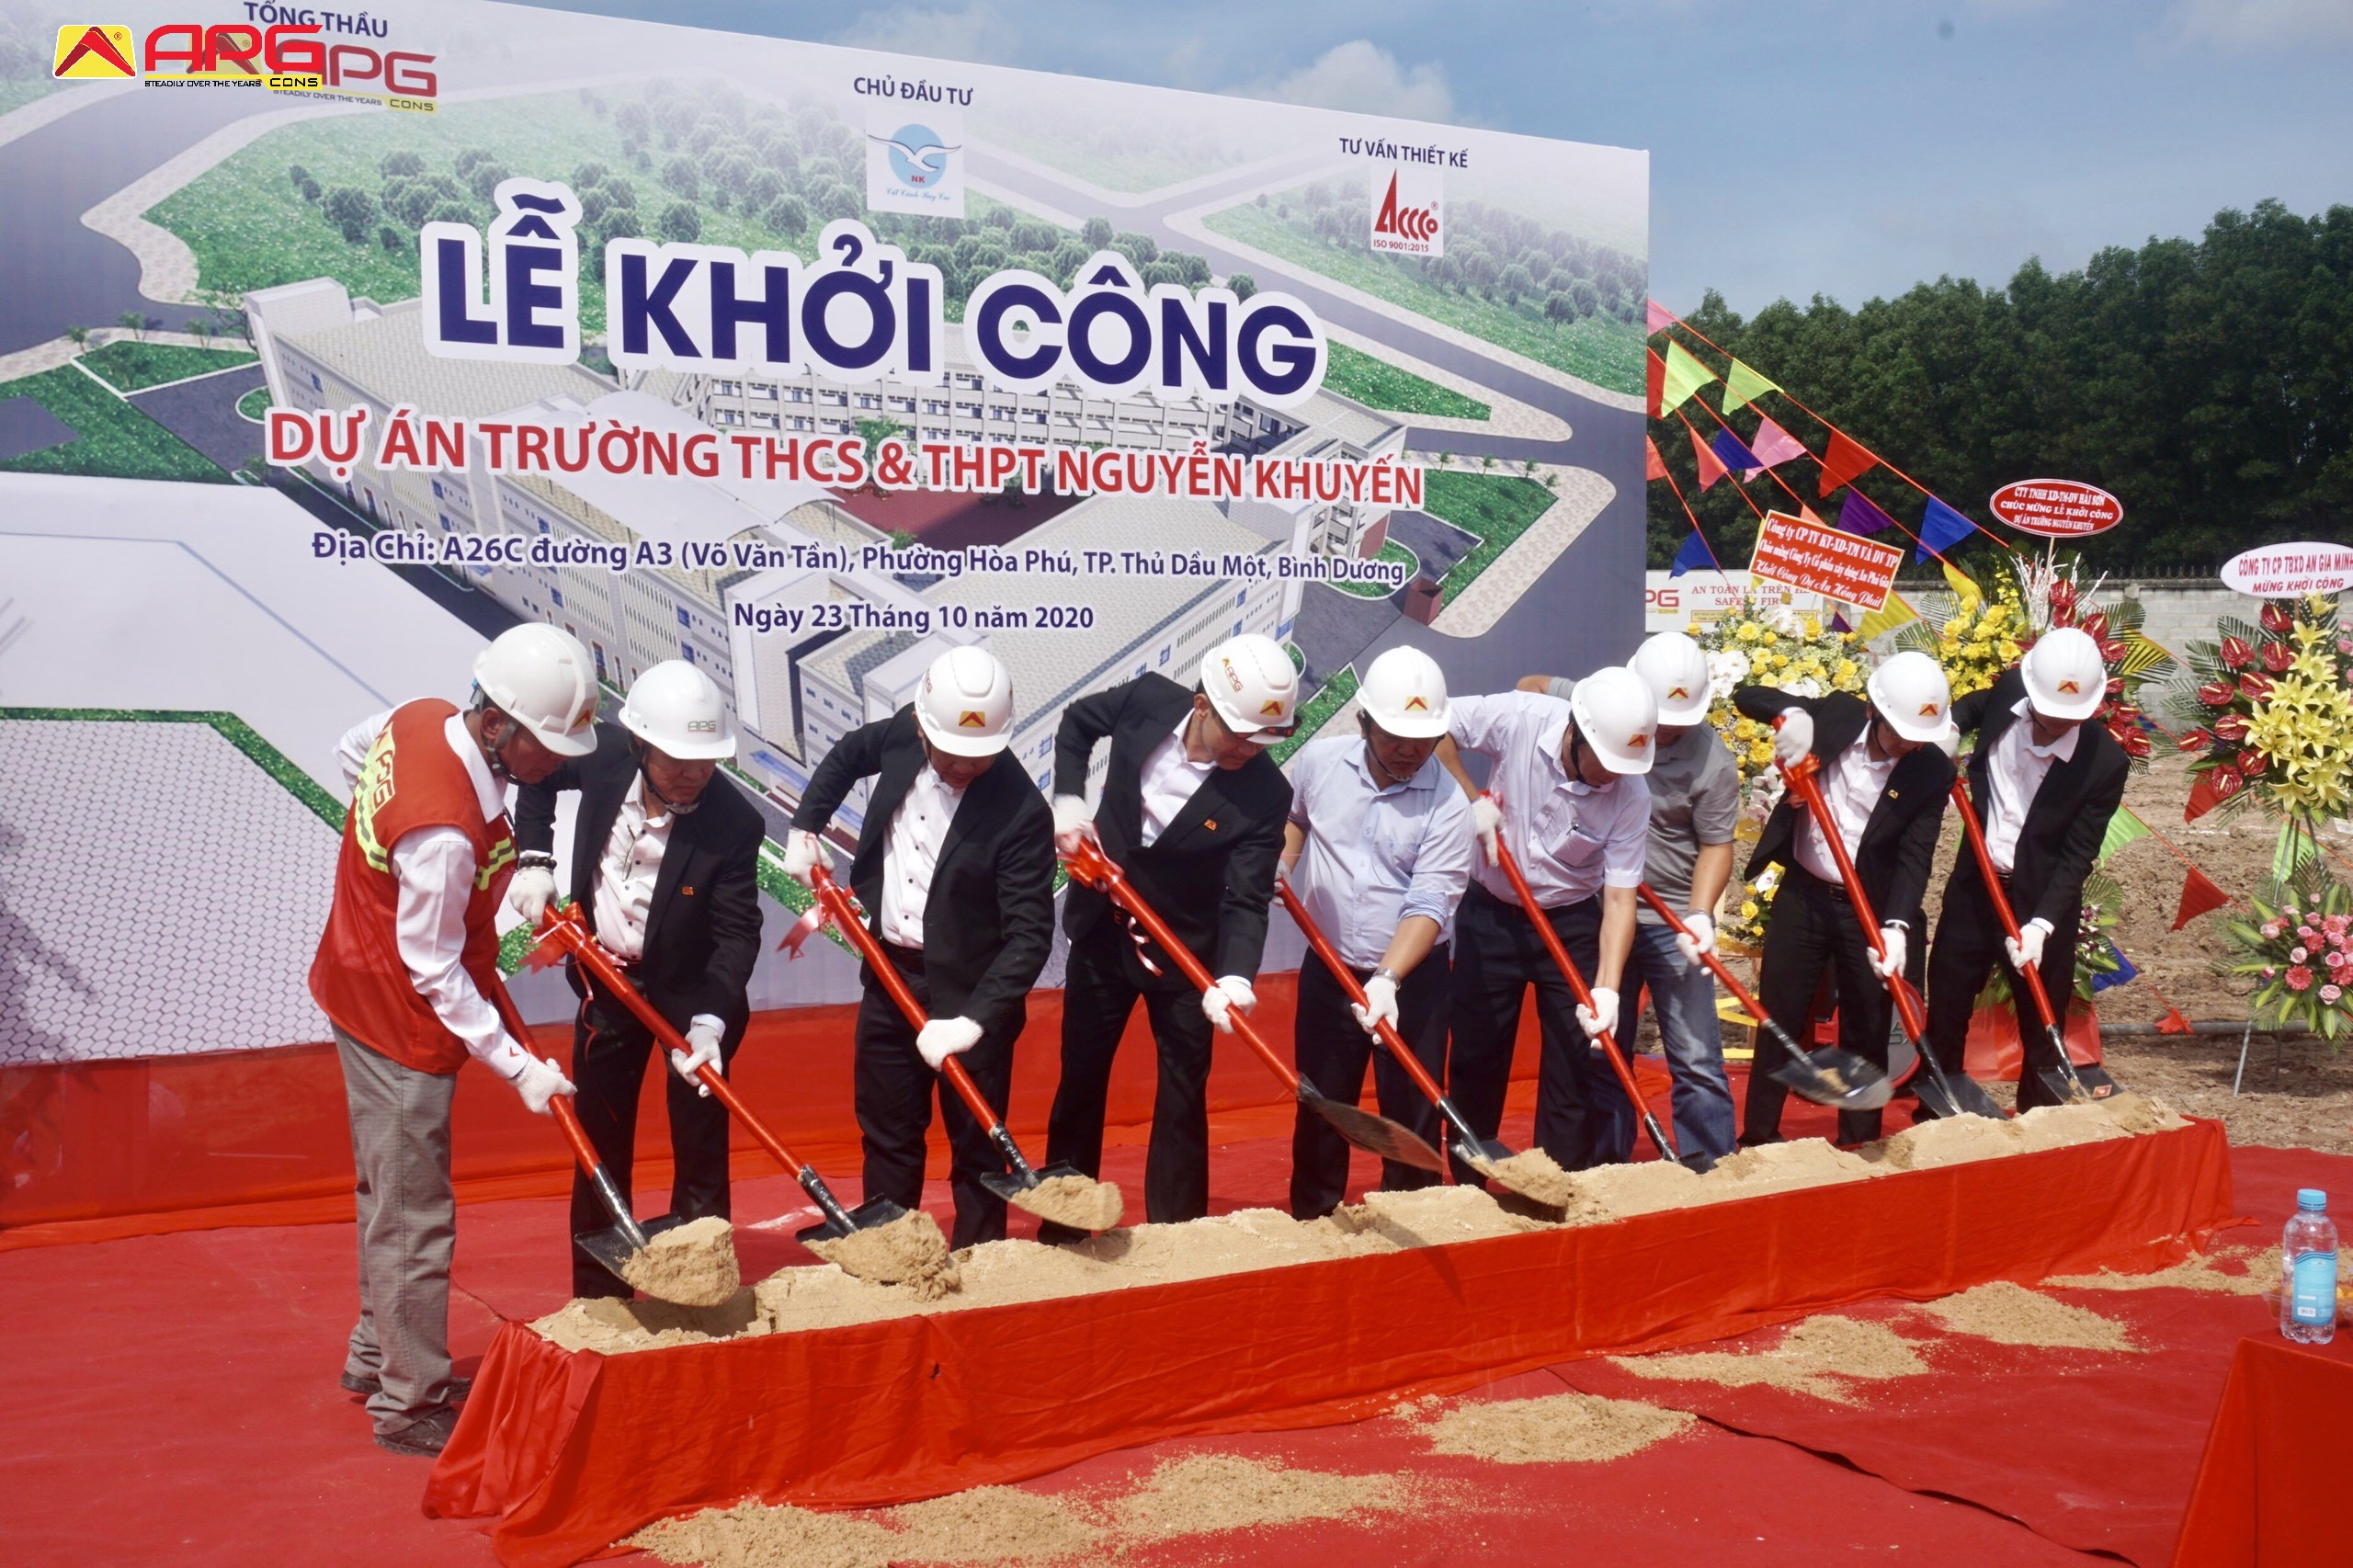 THE GROUNDBREAKING CEREMONY OF NGUYEN KHUYEN SECONDARY AND HIGH SCHOOL PROJECT